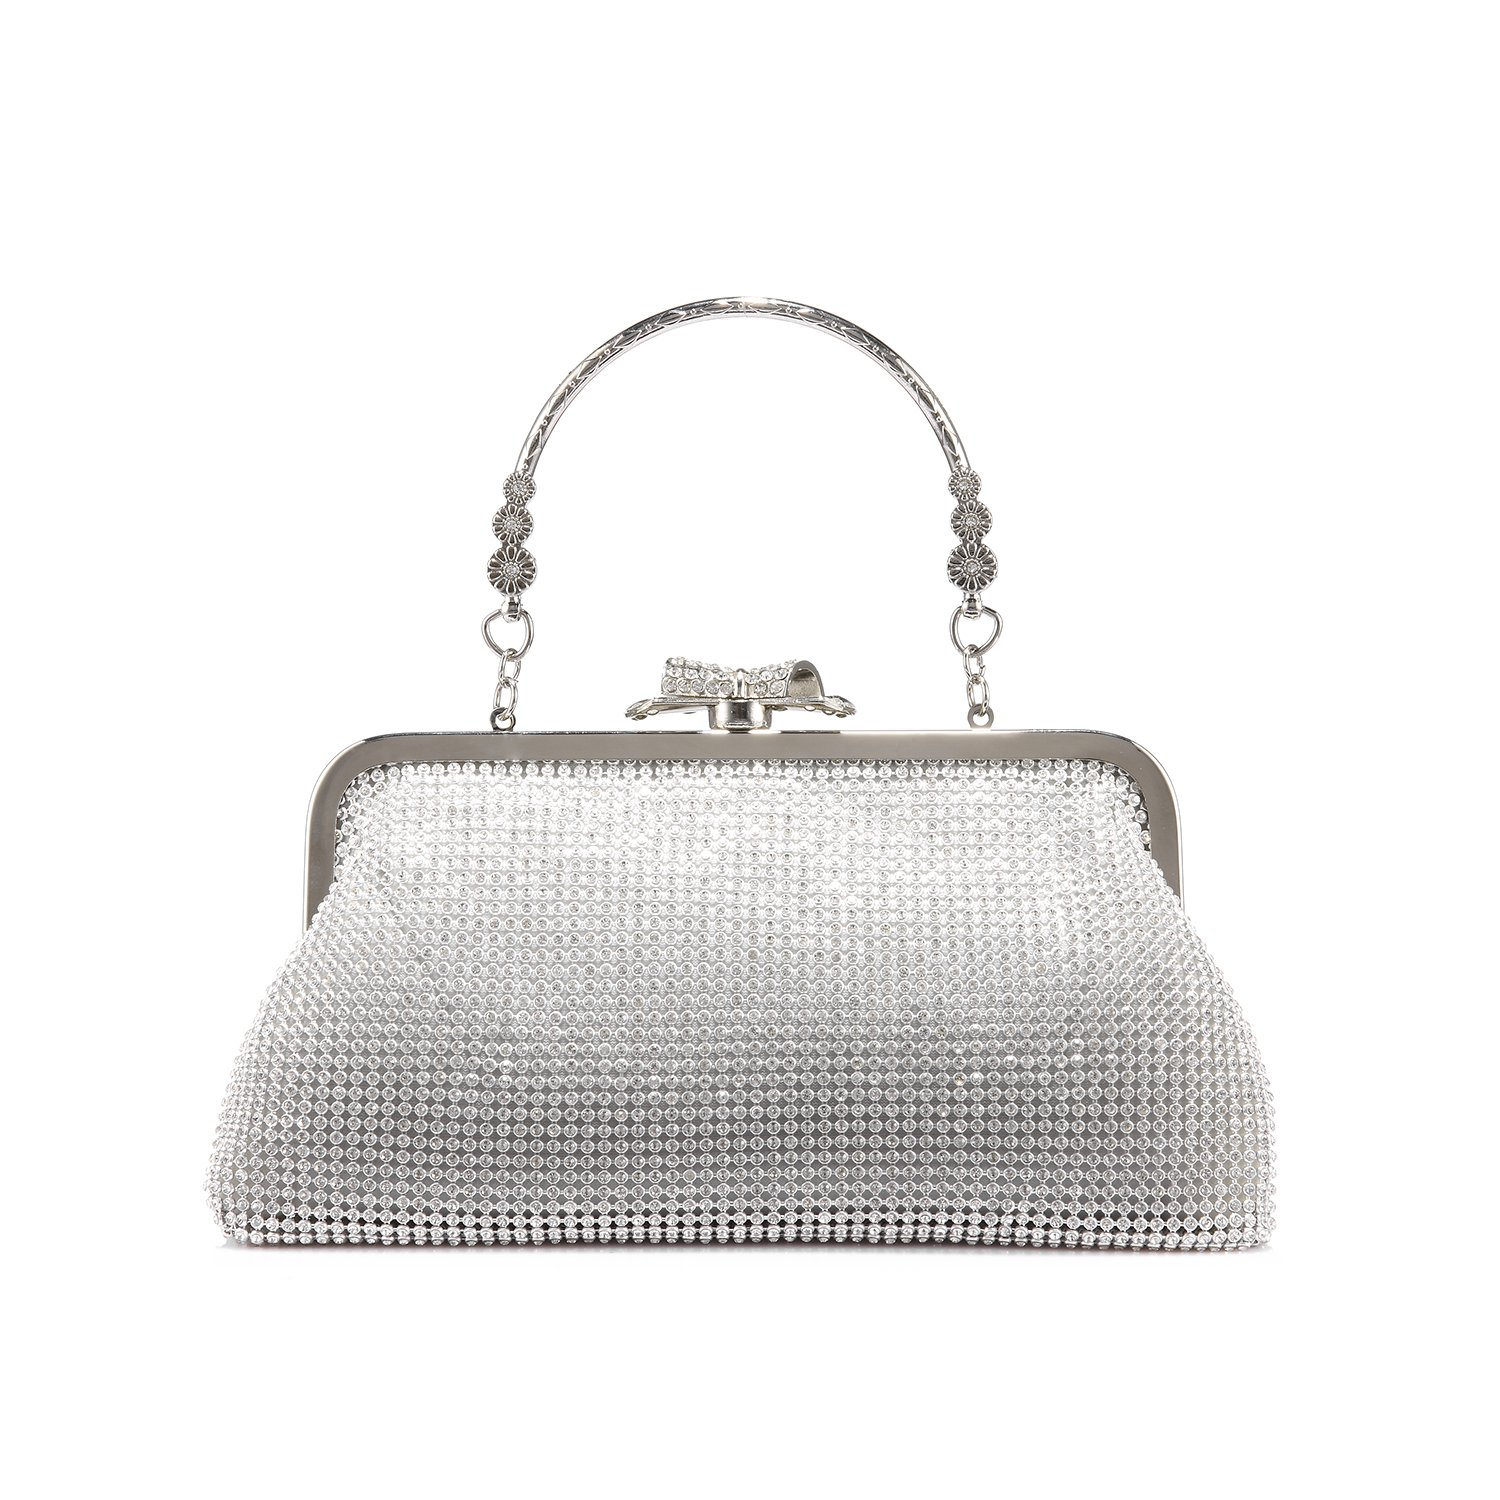 LOVEVOOK Evening Bag Clutch Purse for Wedding with Rhinestones Silver